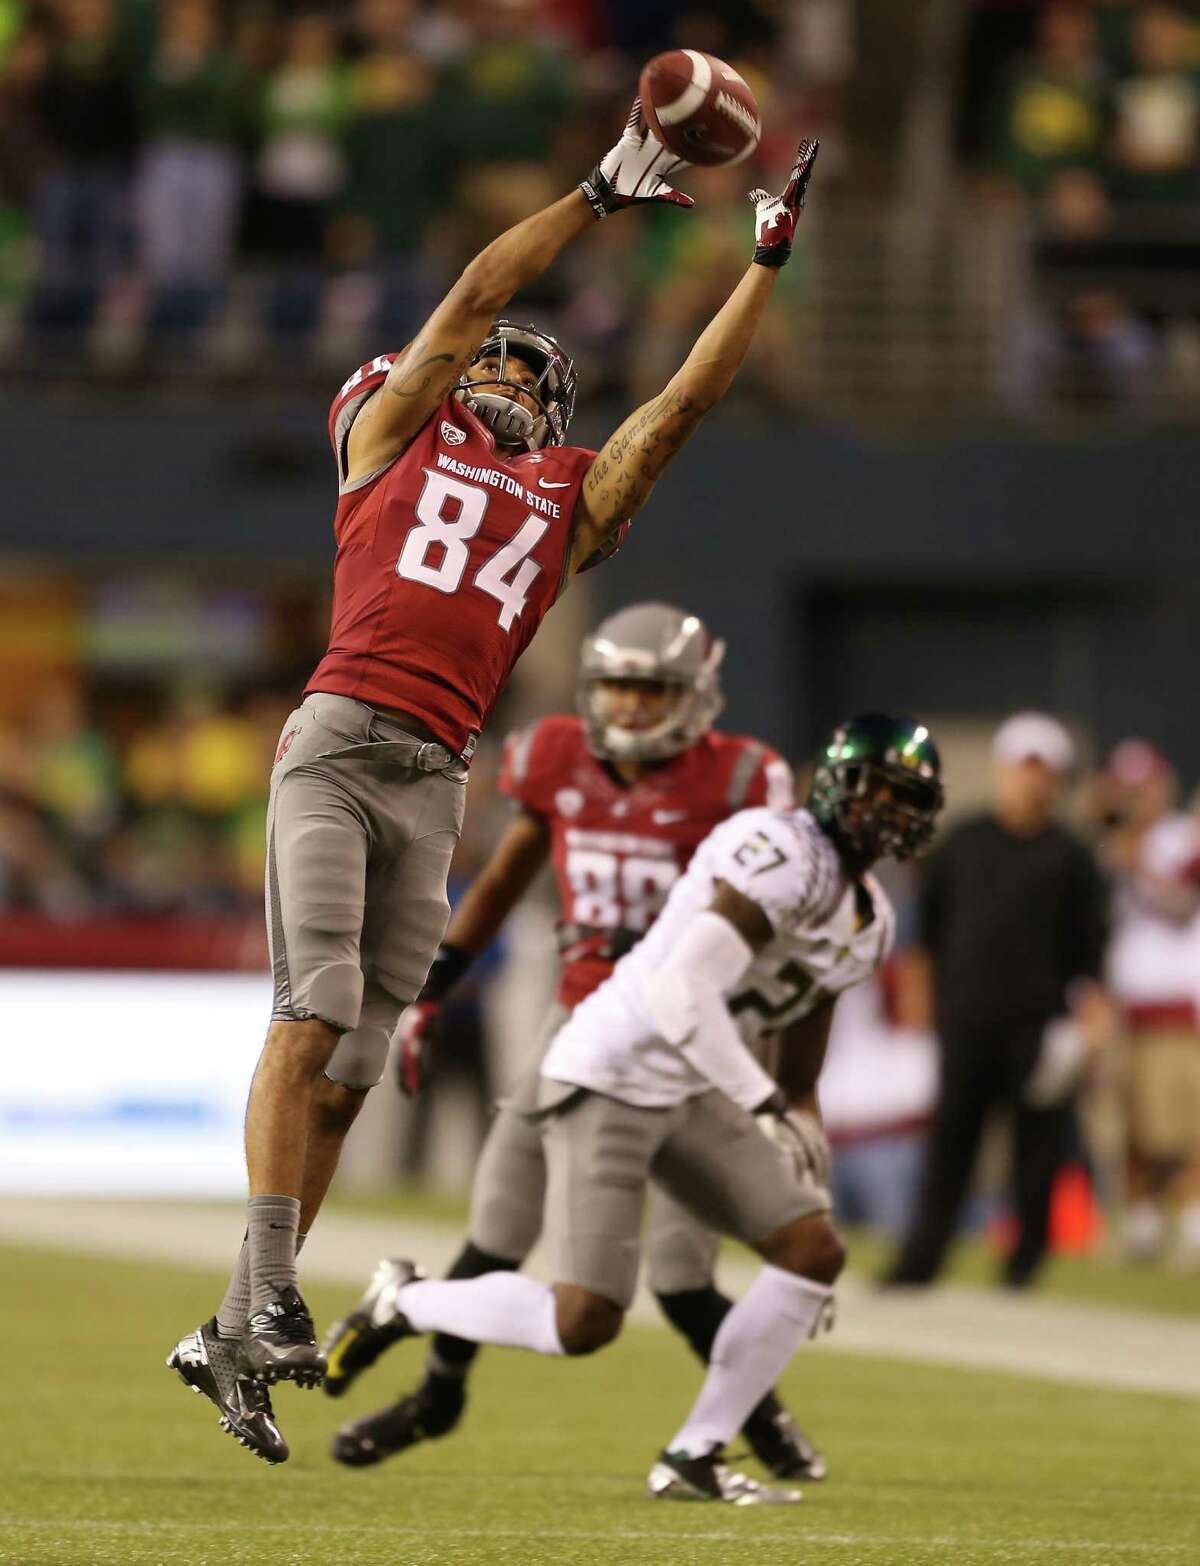 SEATTLE, WA - SEPTEMBER 29: Wide receiver Gabe Marks #84 of the Washington State Cougars makes a catch against the Oregon Ducks on September 29, 2012 at CenturyLink Field in Seattle, Washington.